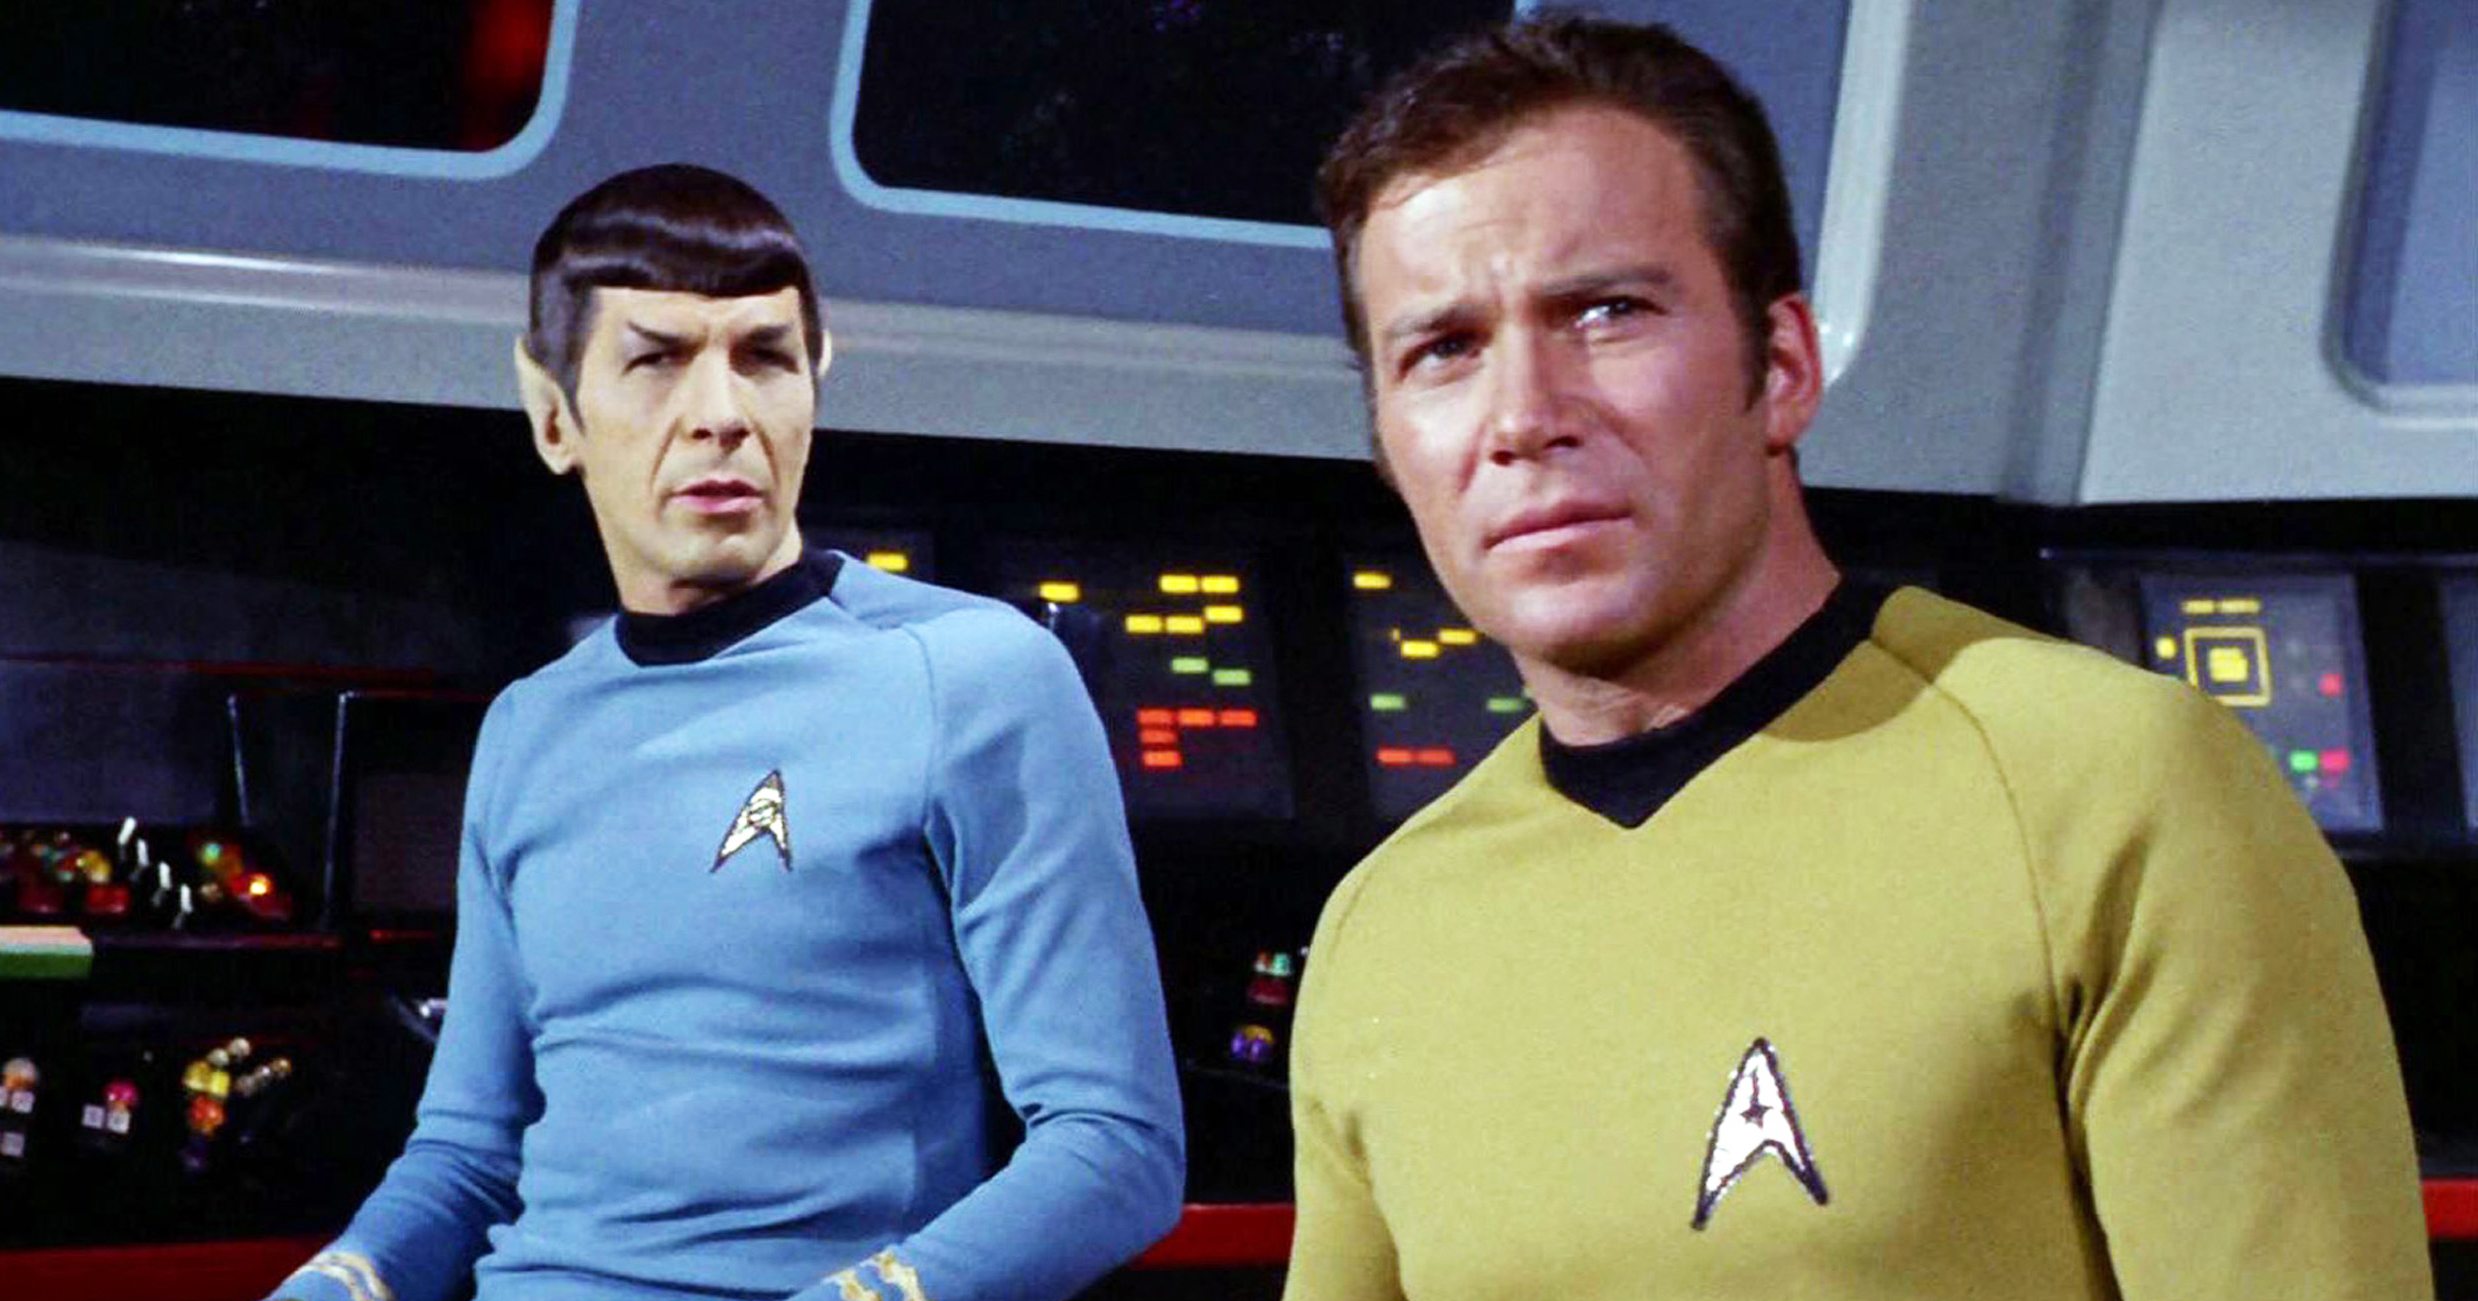 Leonard Nimoy as Mr. Spock and William Shatner as Captain James Kirk in Star Trek.